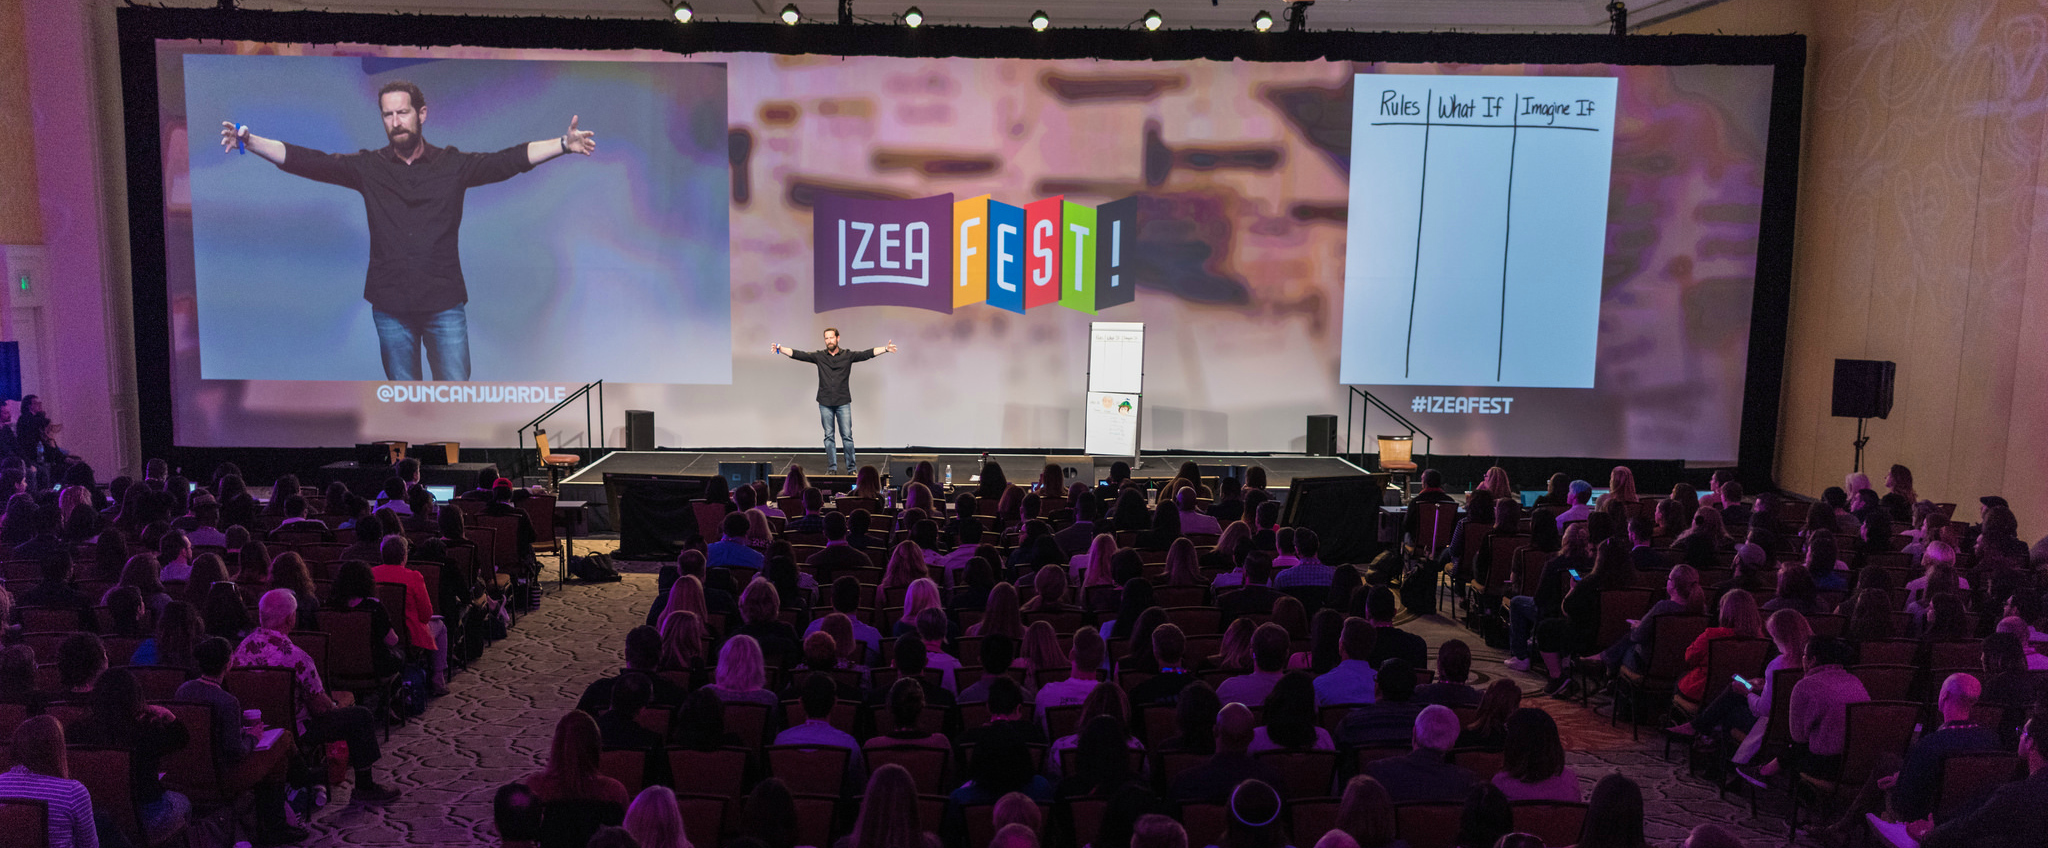 IZEAFest Session Video Recap: Duncan Wardle on Thinking Differently